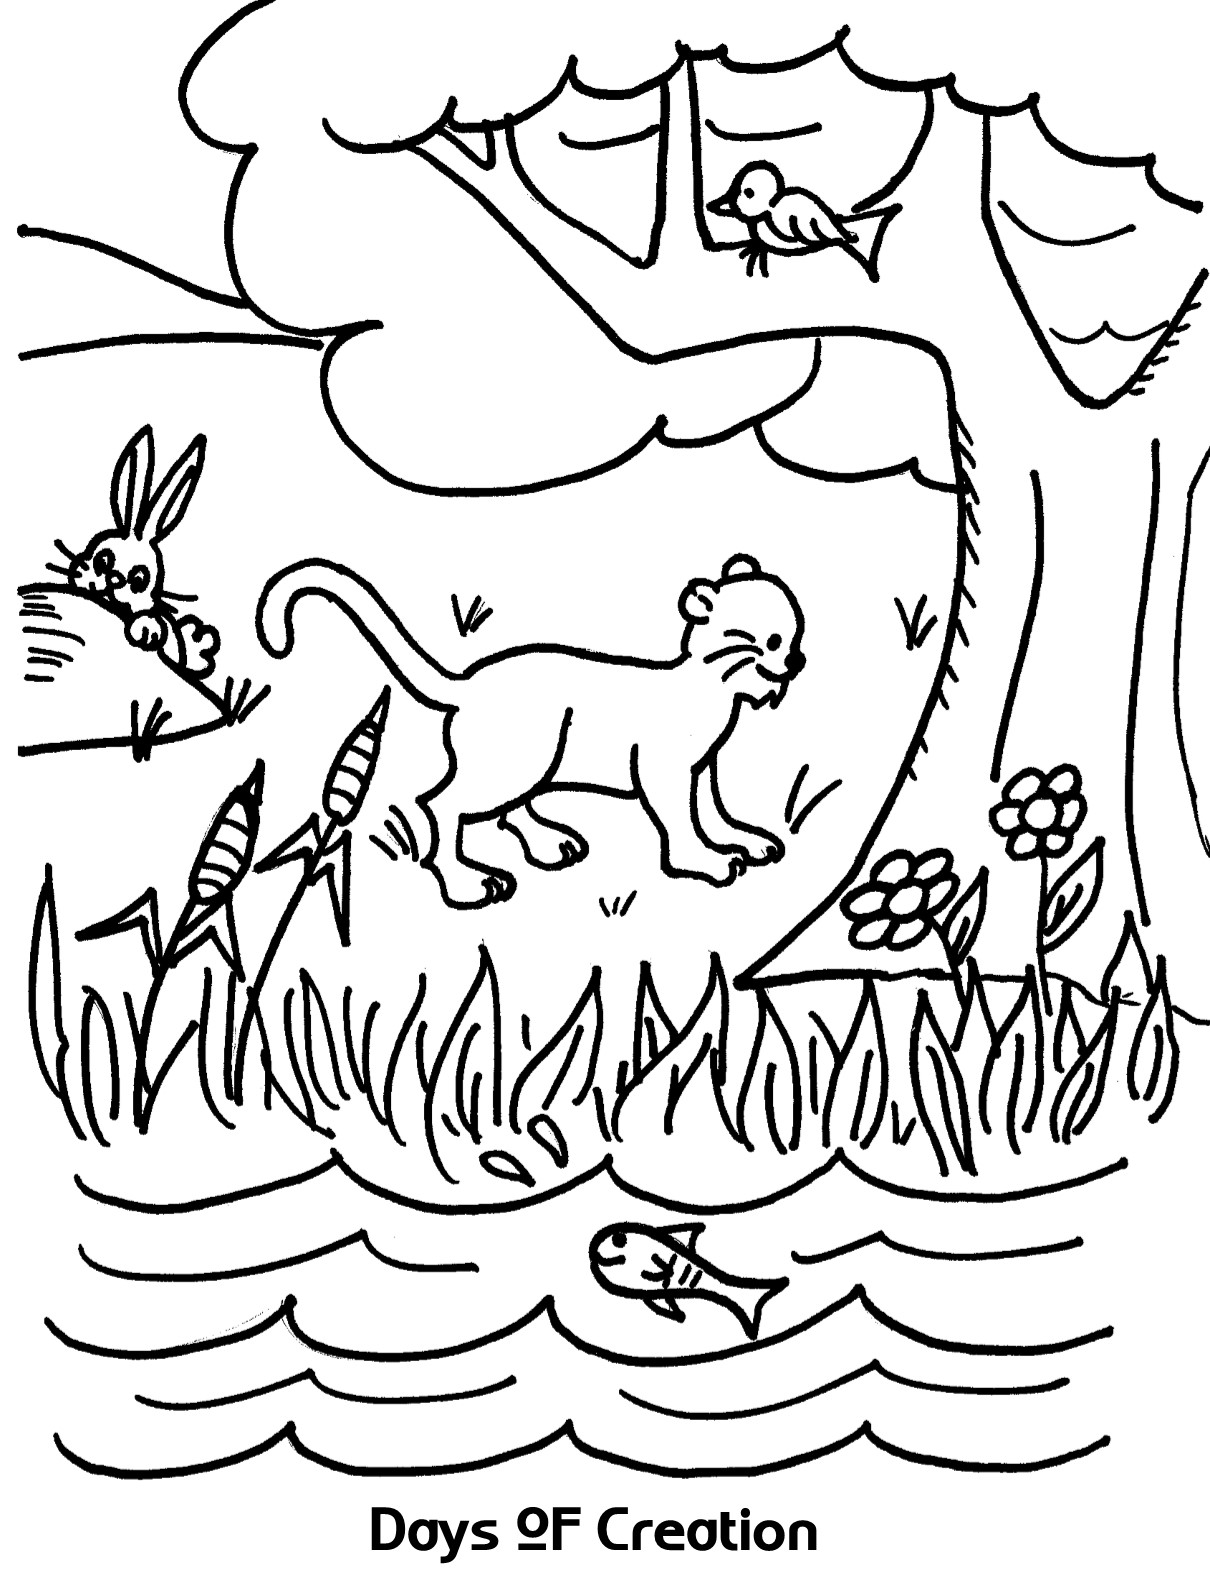 Days of Creation Coloring Page – coloring.rocks!